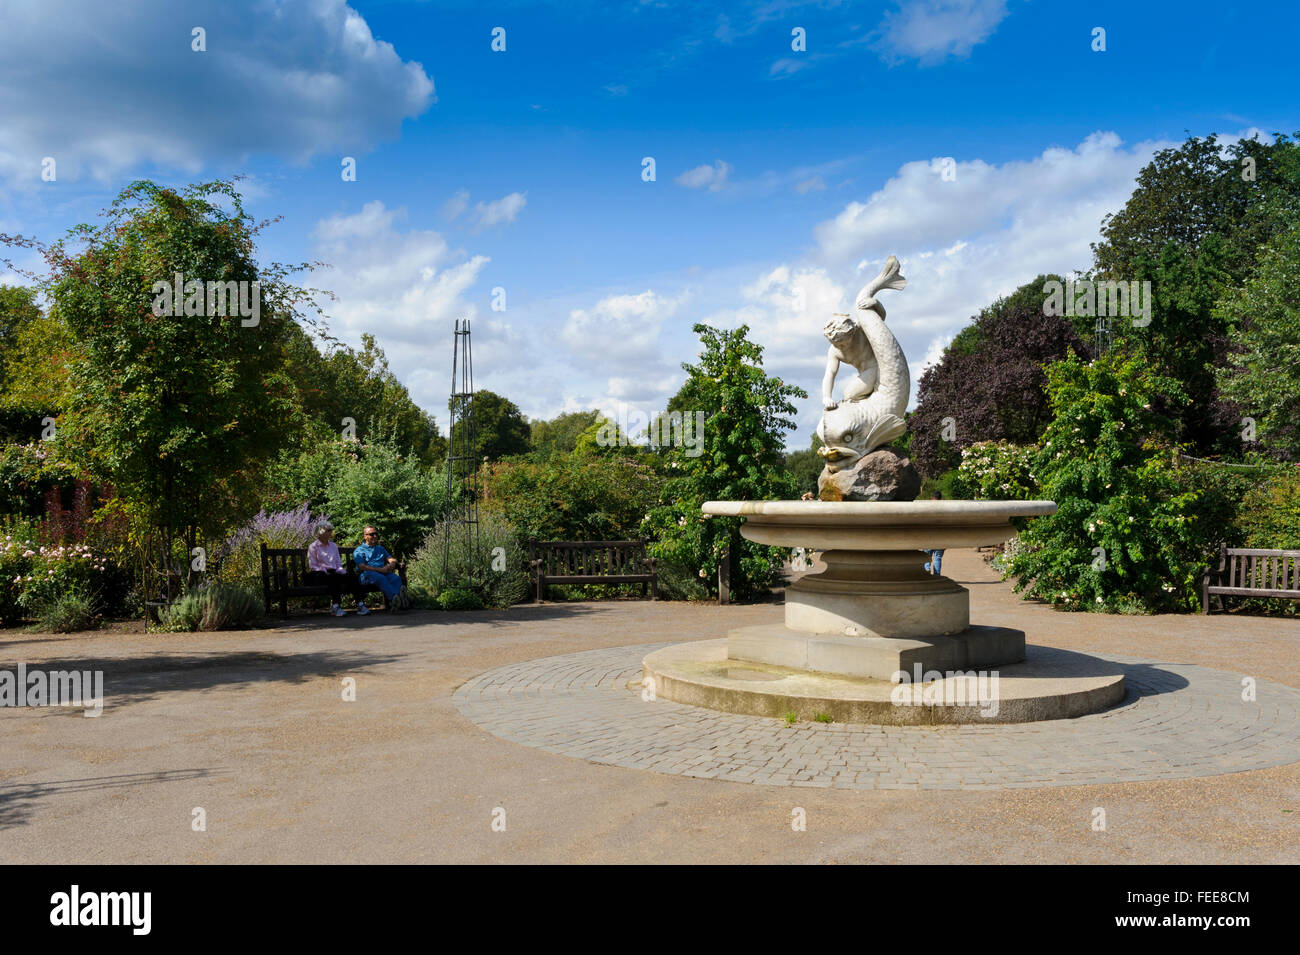 Water fountains hyde park - A Water Fountain With Fish Design In The Garden Within Hyde Park In London United Kingdom